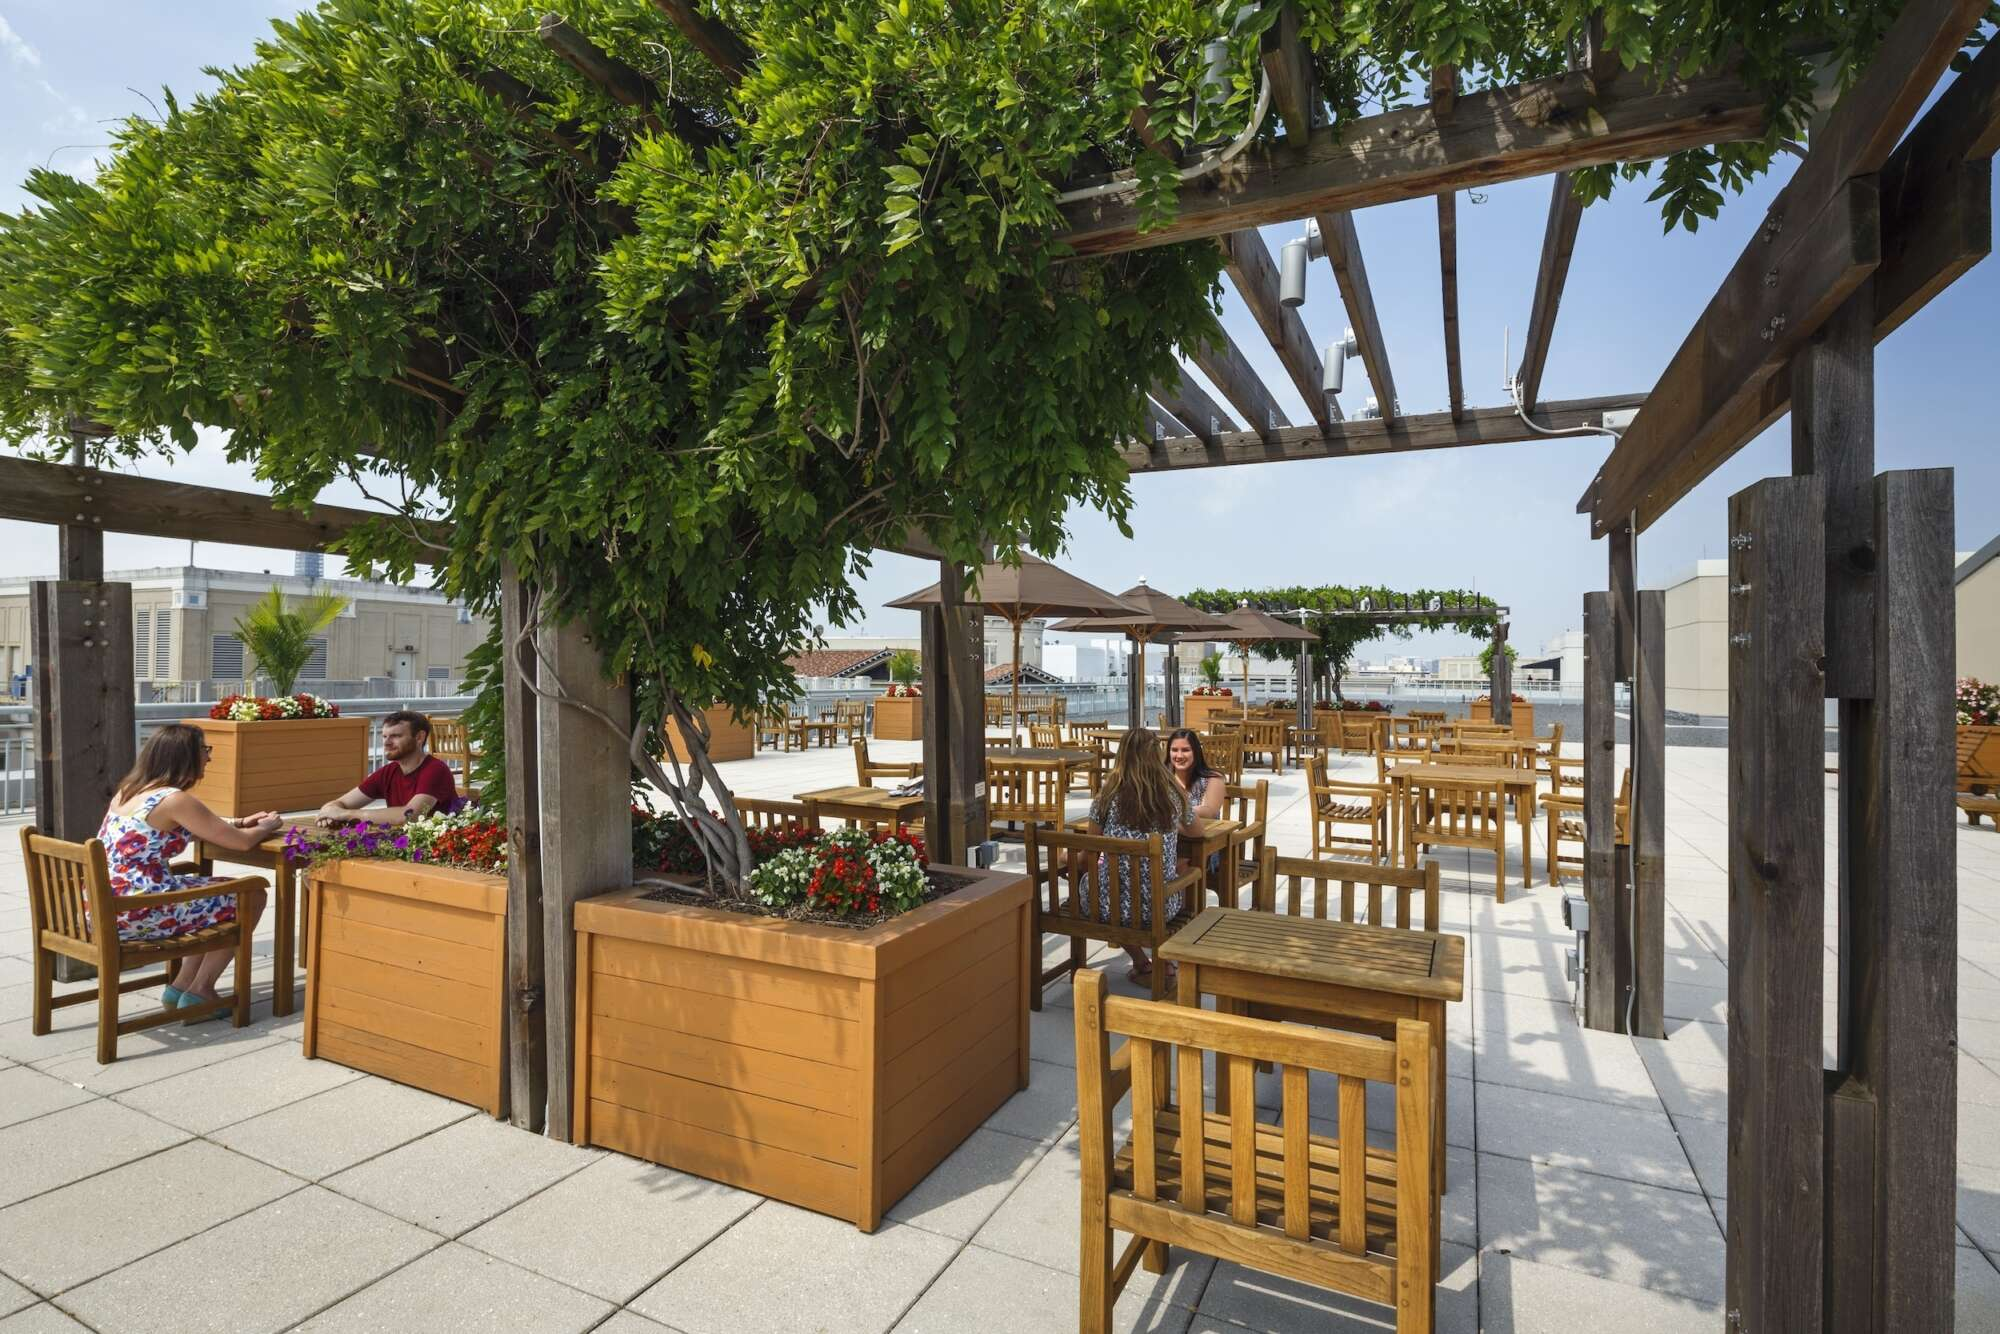 Rooftop patio of One Metro Center